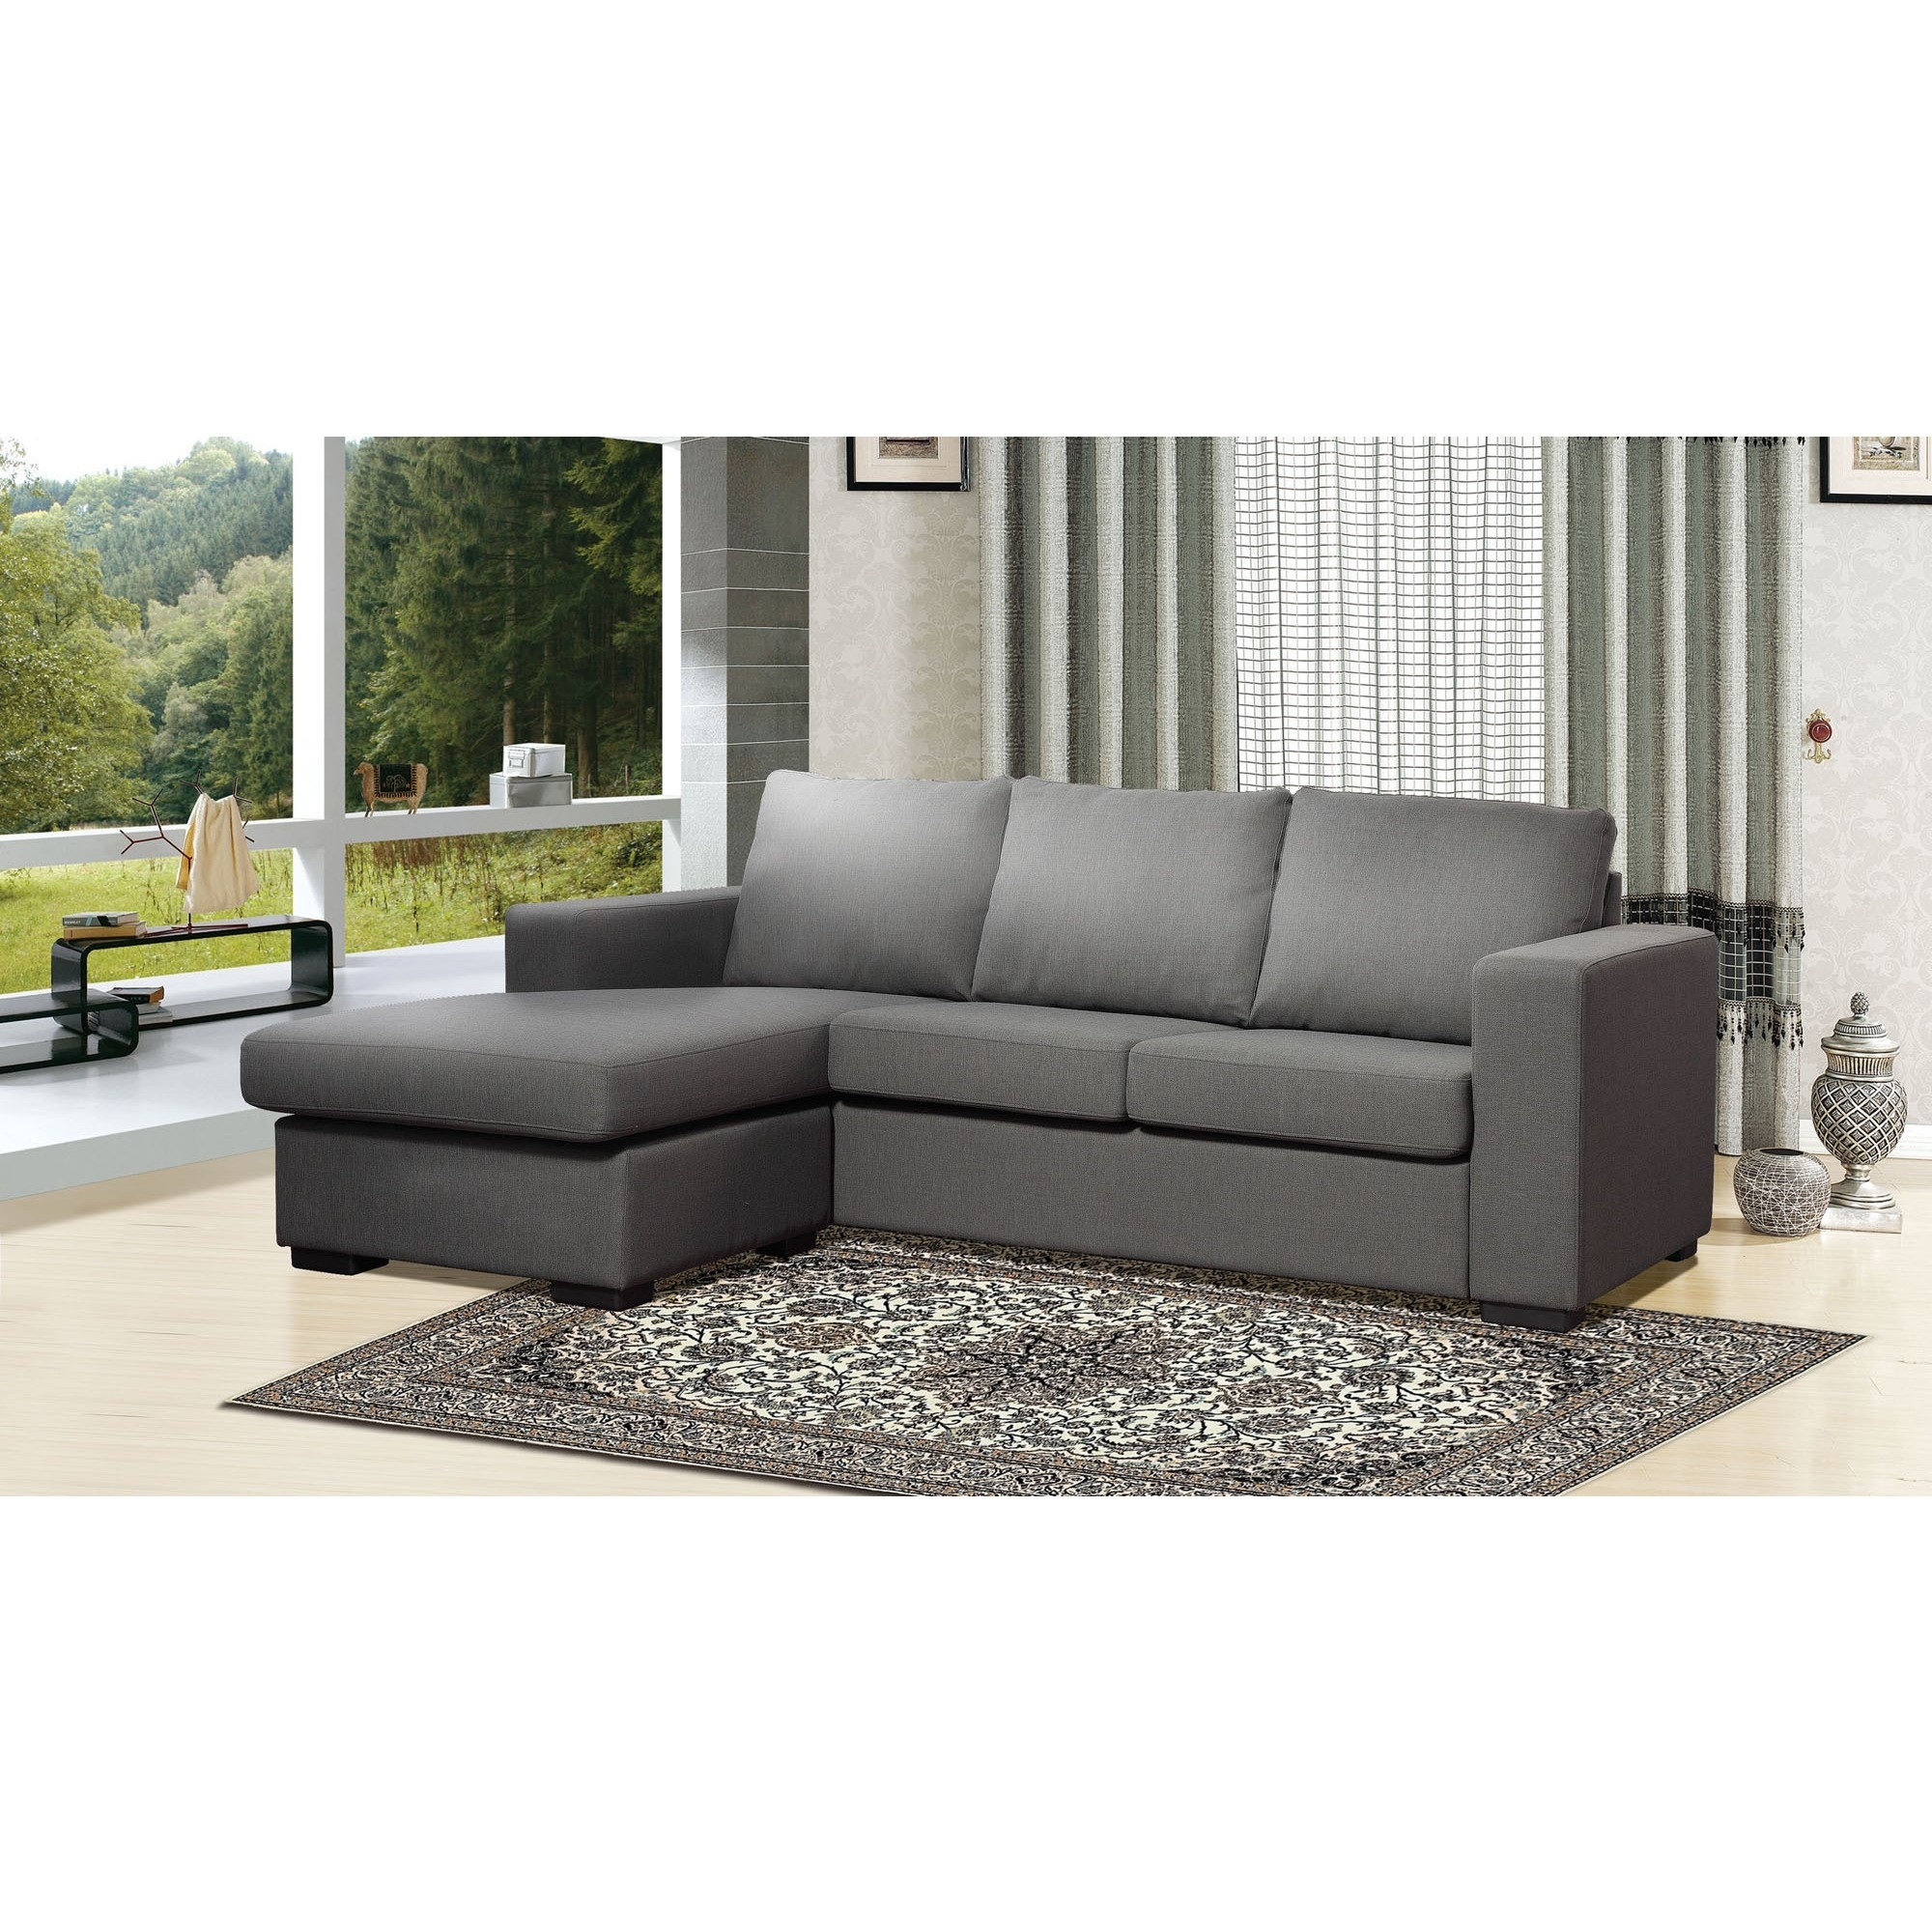 Furniture : Sectional Couch Rug Placement Corner Couch With Cup Pertaining To Sectional Sofas At Bc Canada (View 5 of 10)